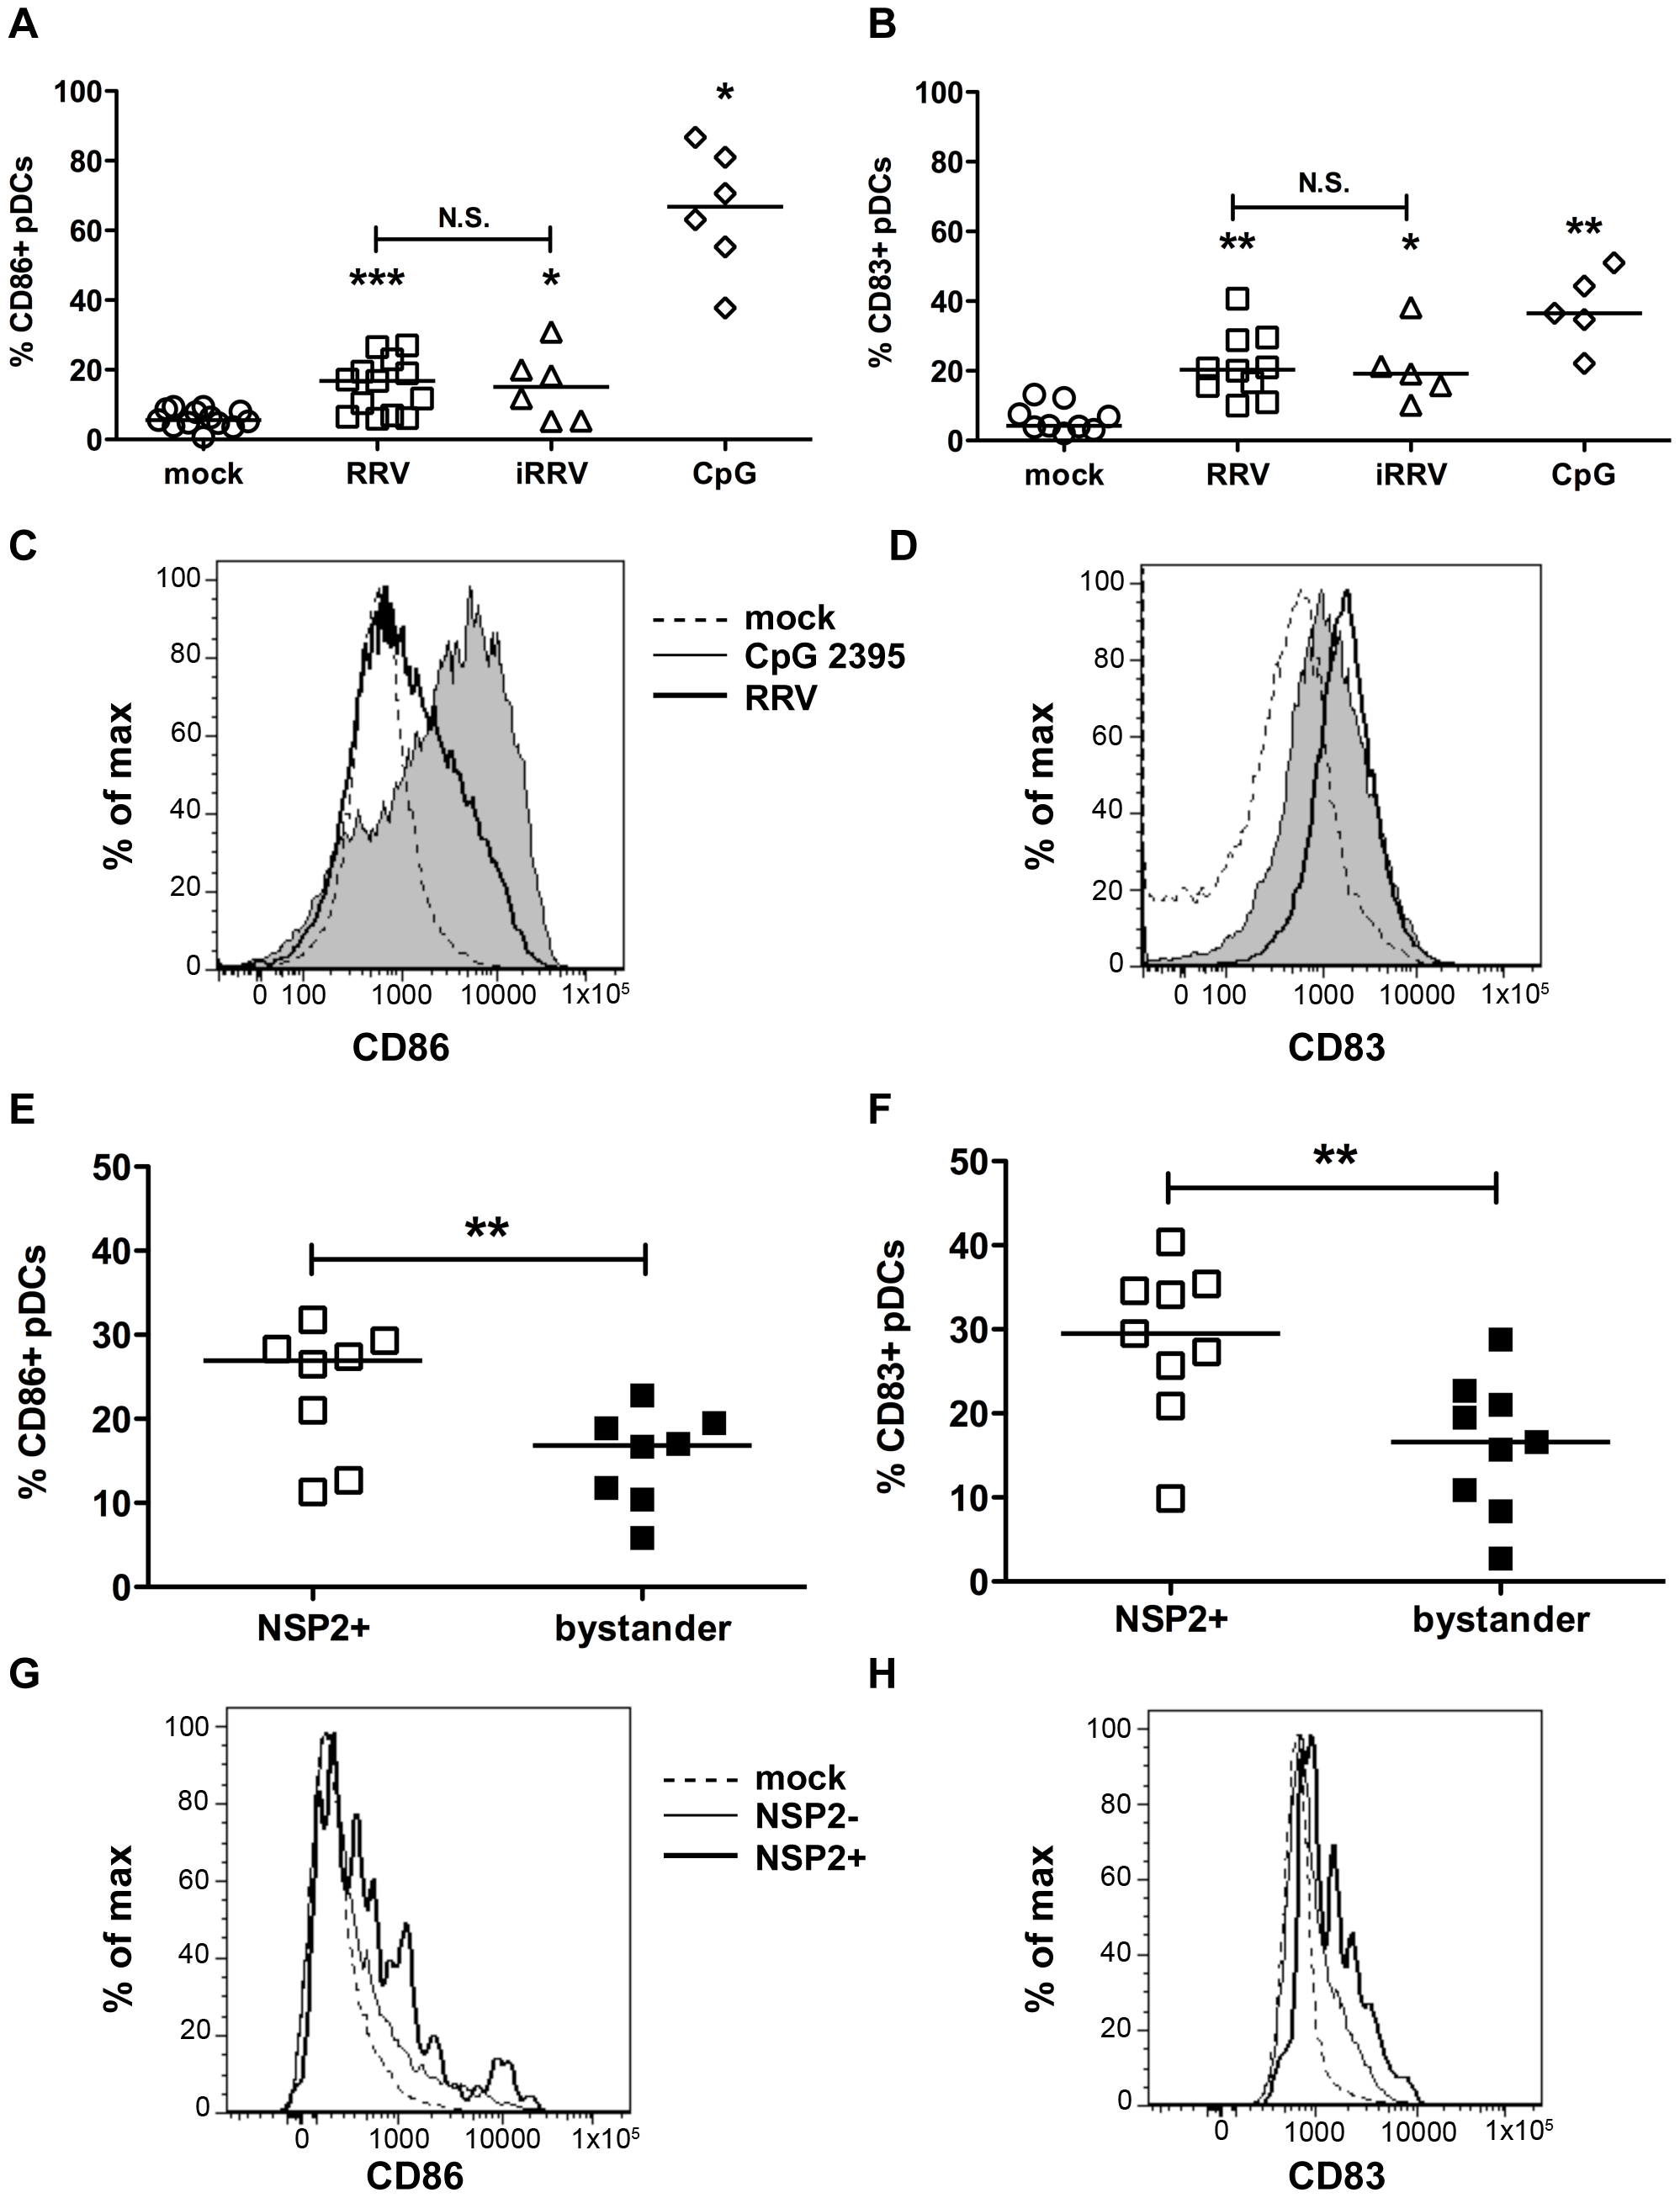 Peripheral pDC activation and maturation following exposure to live or inactivated RRV.